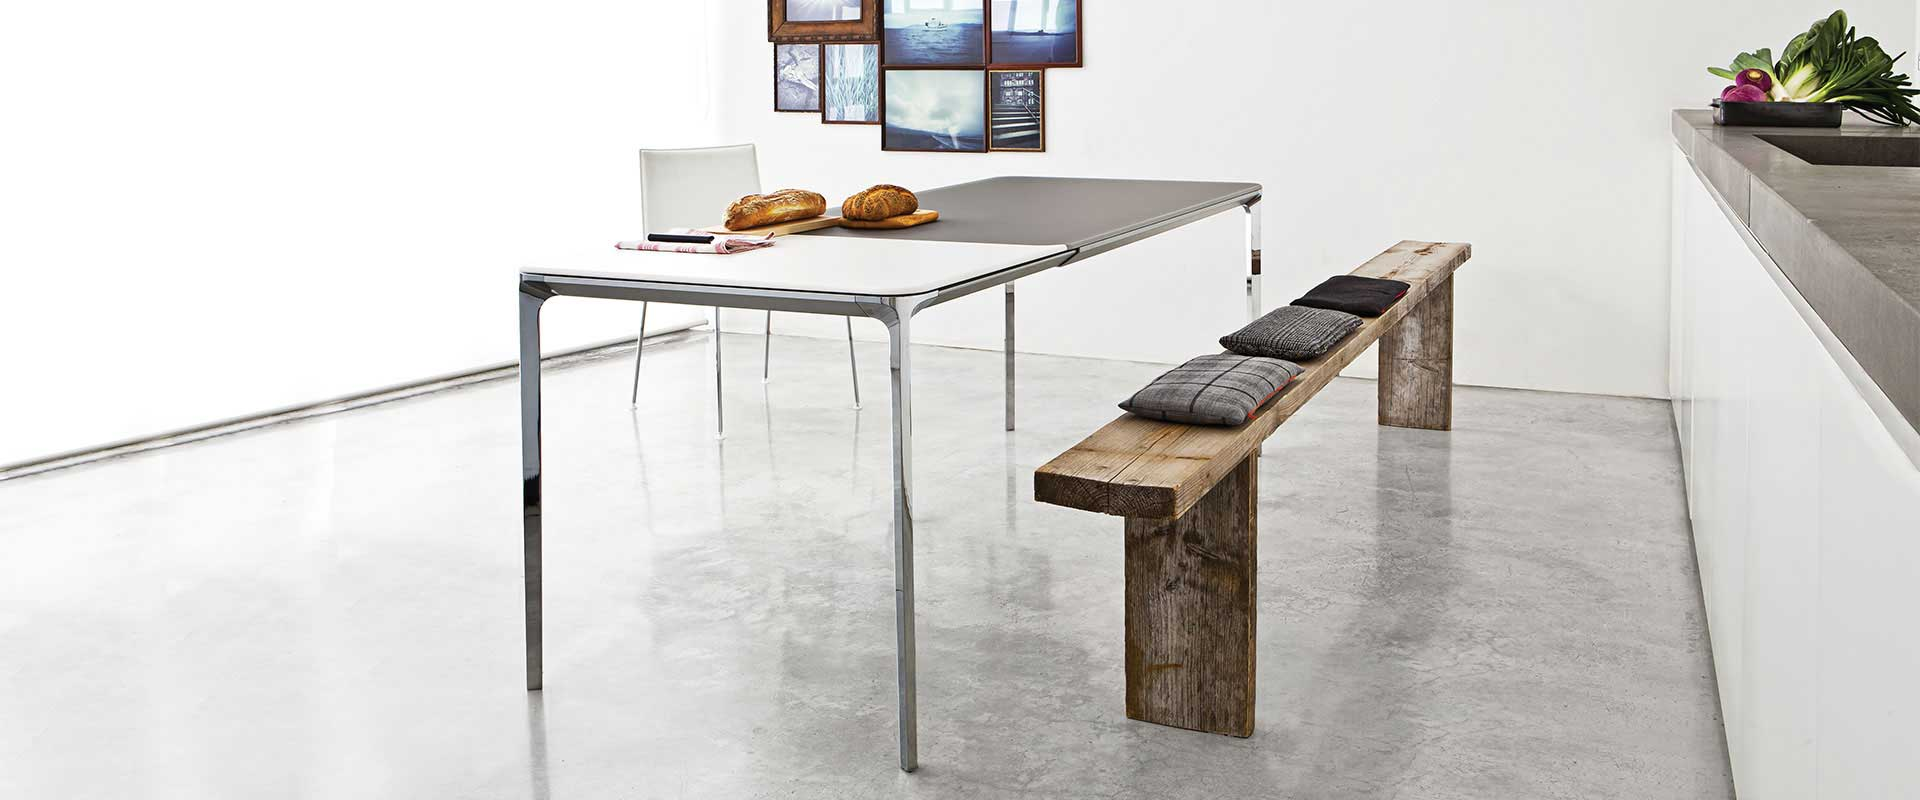 metal and glass furniture by sovet italia